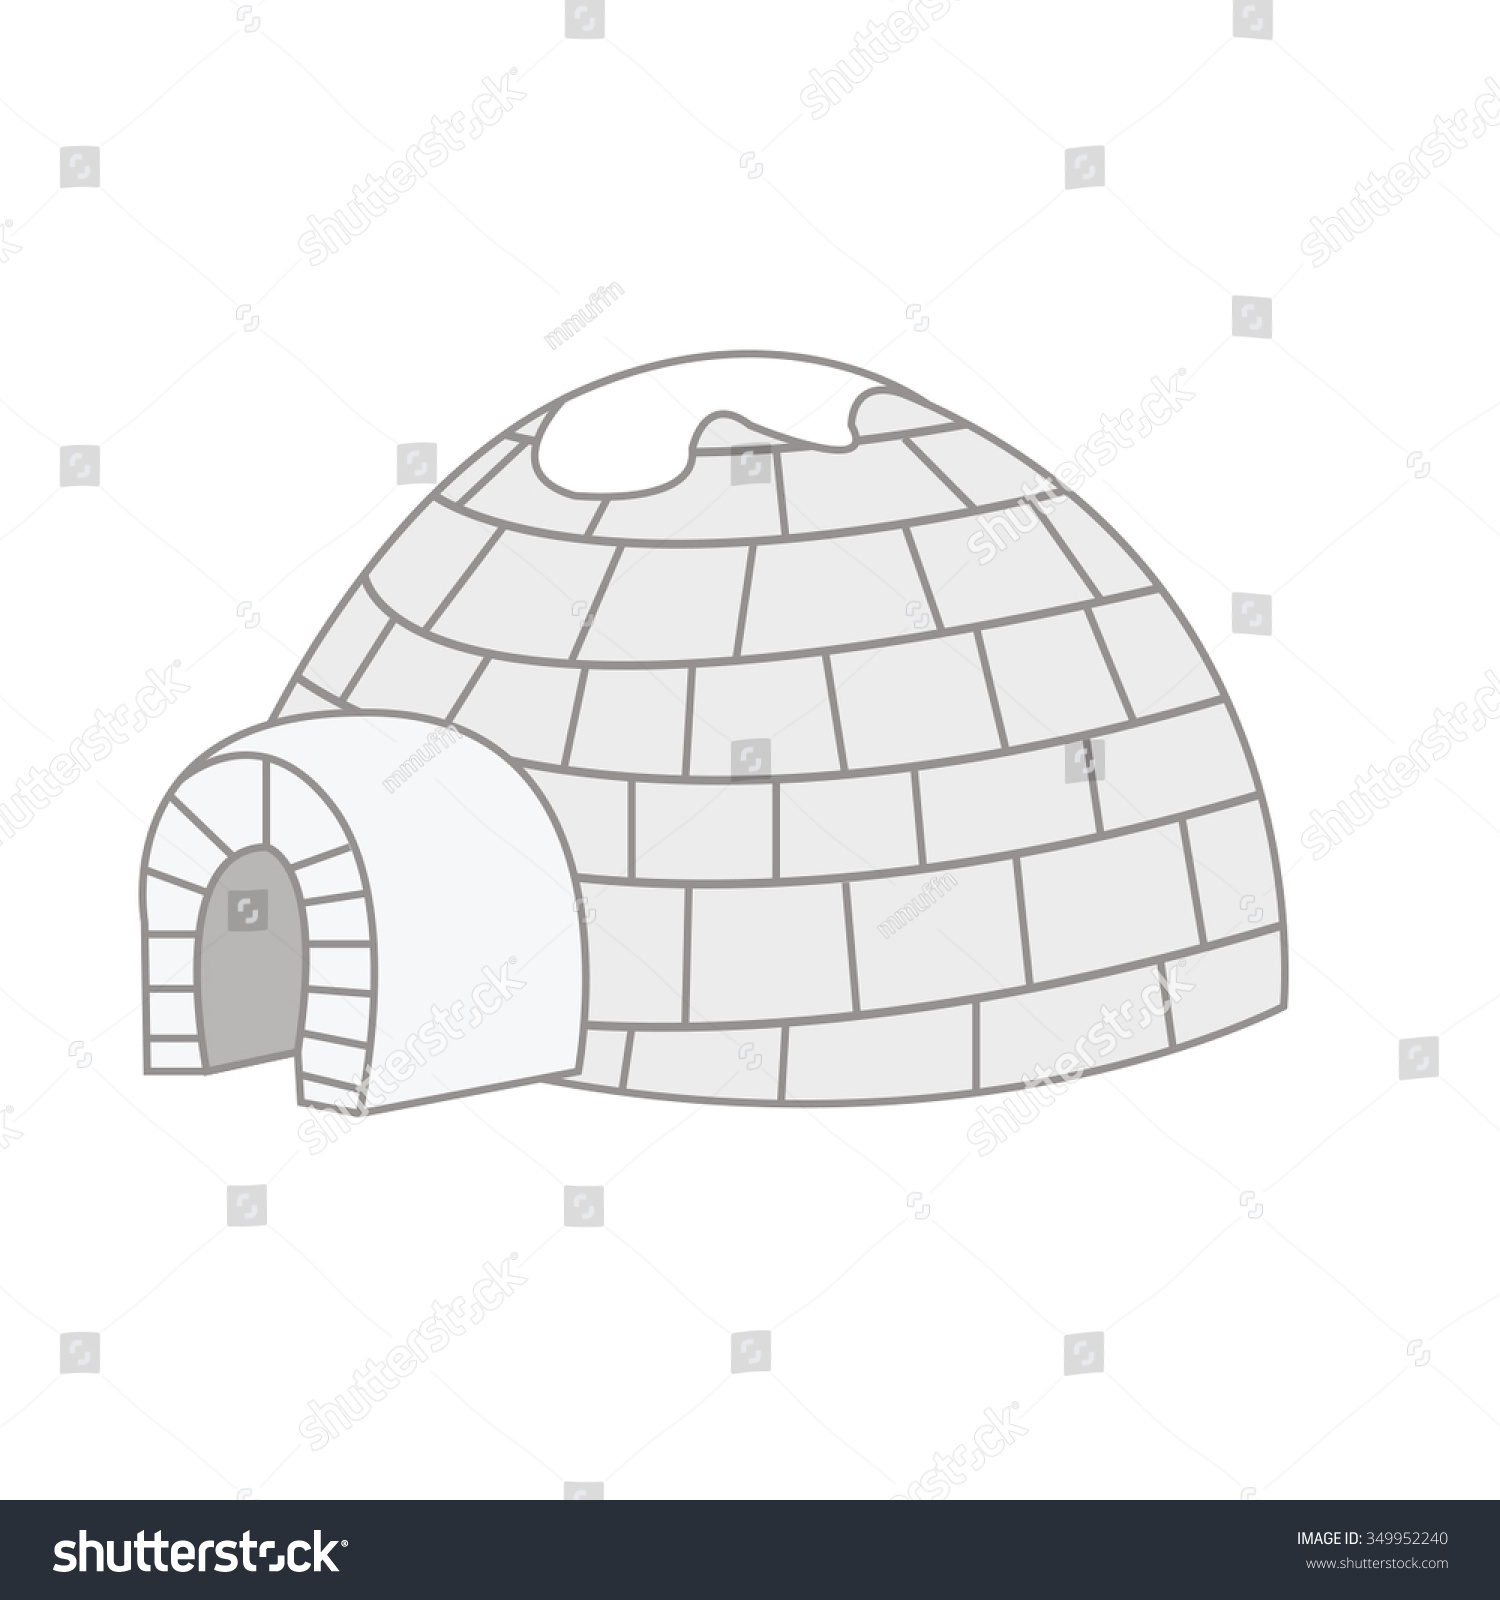 Igloo vector drawing design art illustration stock vector igloo vector drawing design art illustration pooptronica